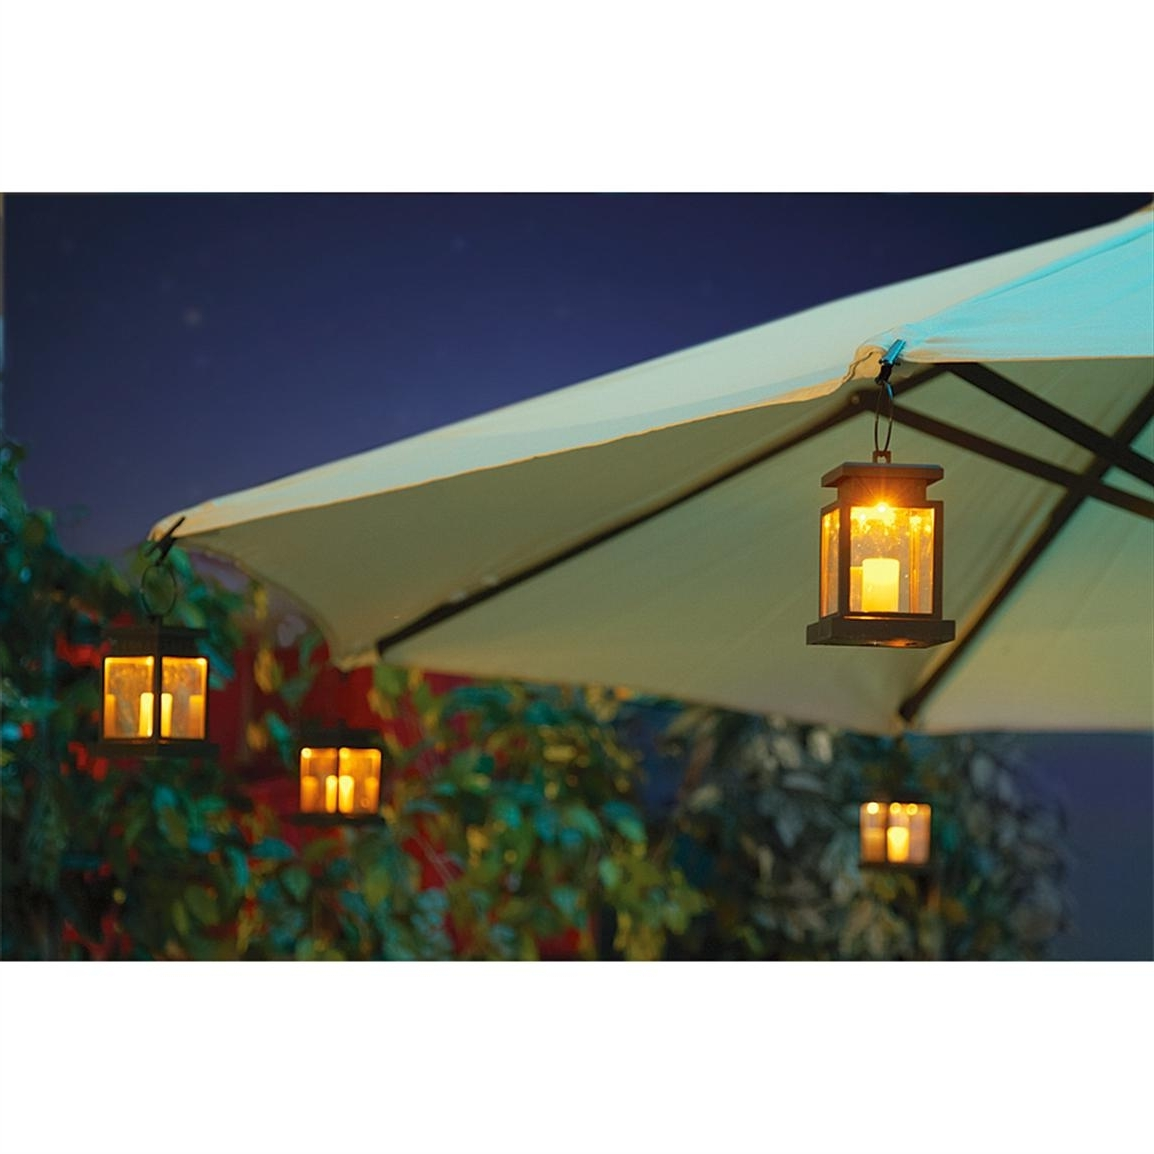 Patio Umbrellas With Solar Led Lights Within Most Up To Date Outdoor Light : Extraordinary Patio Umbrella Lights Battery Operated (View 7 of 20)